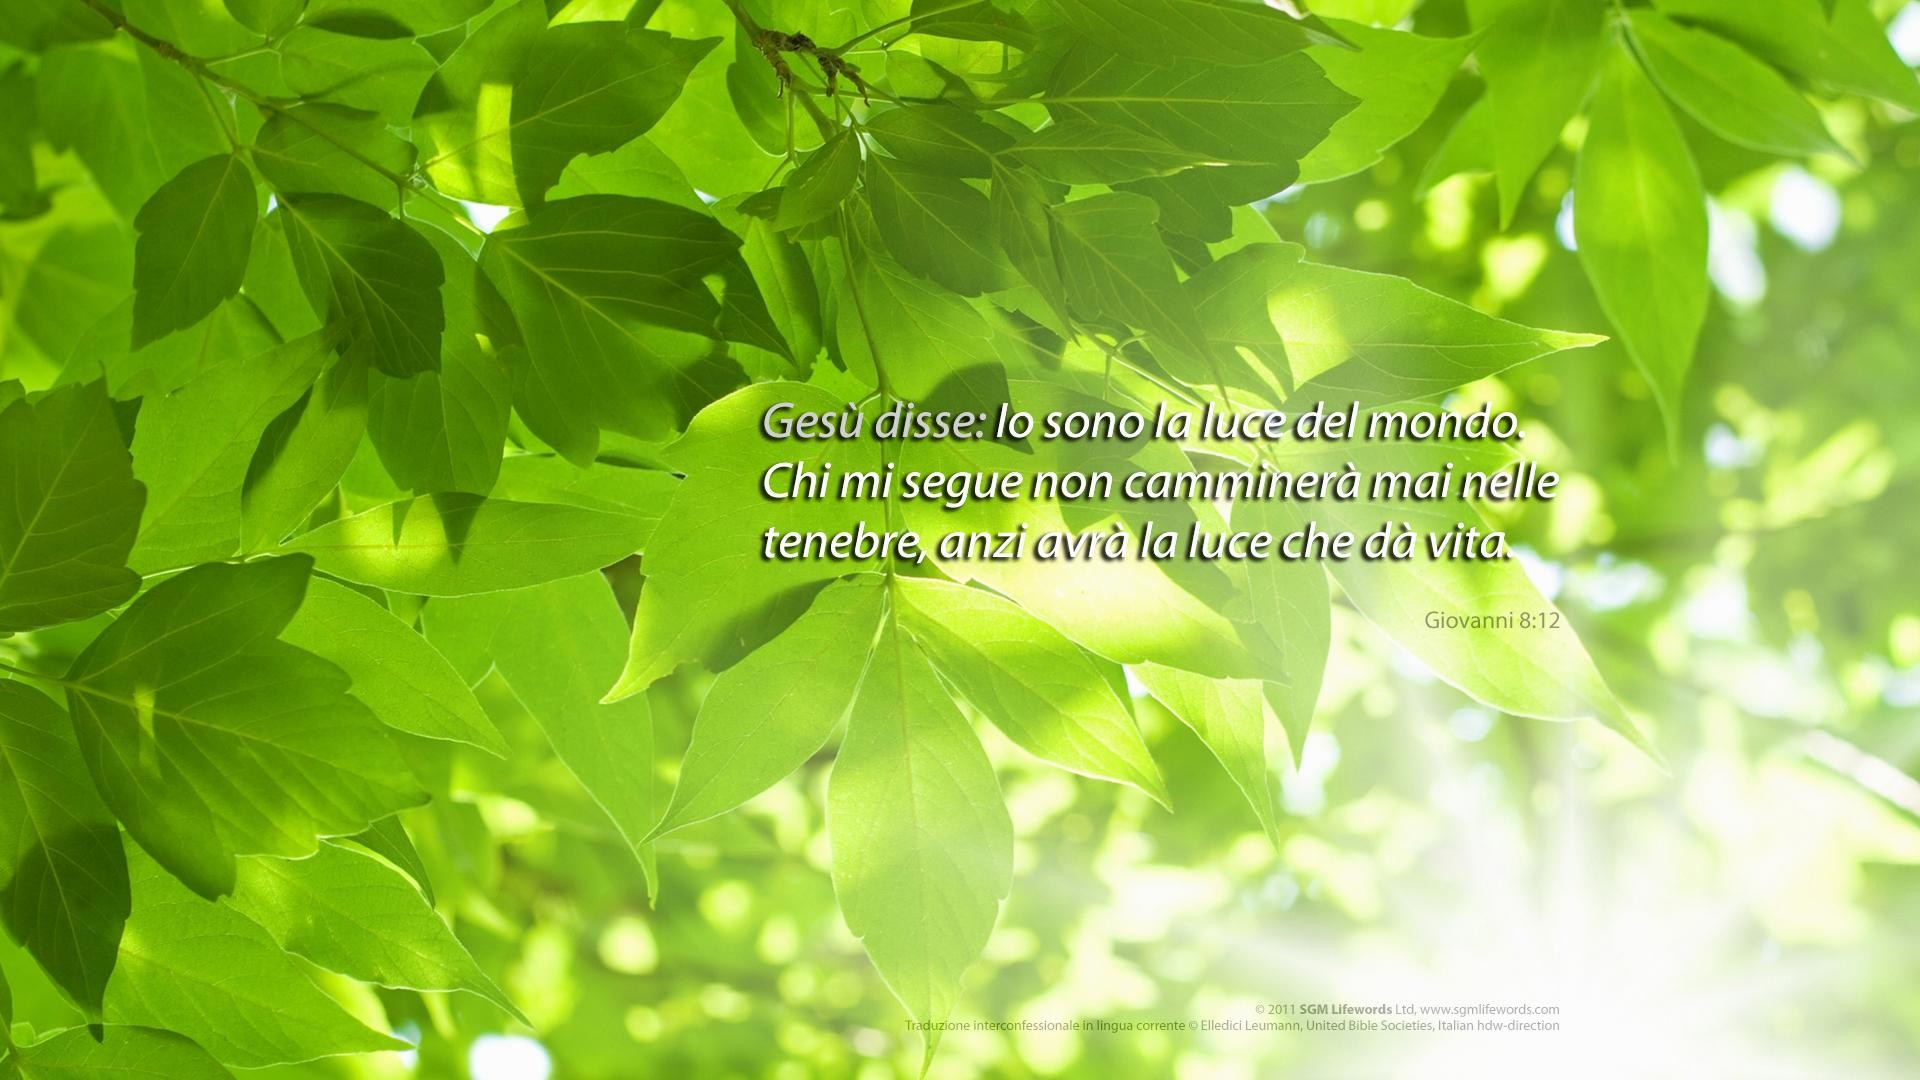 Telugu Love Quotes Hd Wallpapers Bible Verse Pictures Wallpaper 58 Images